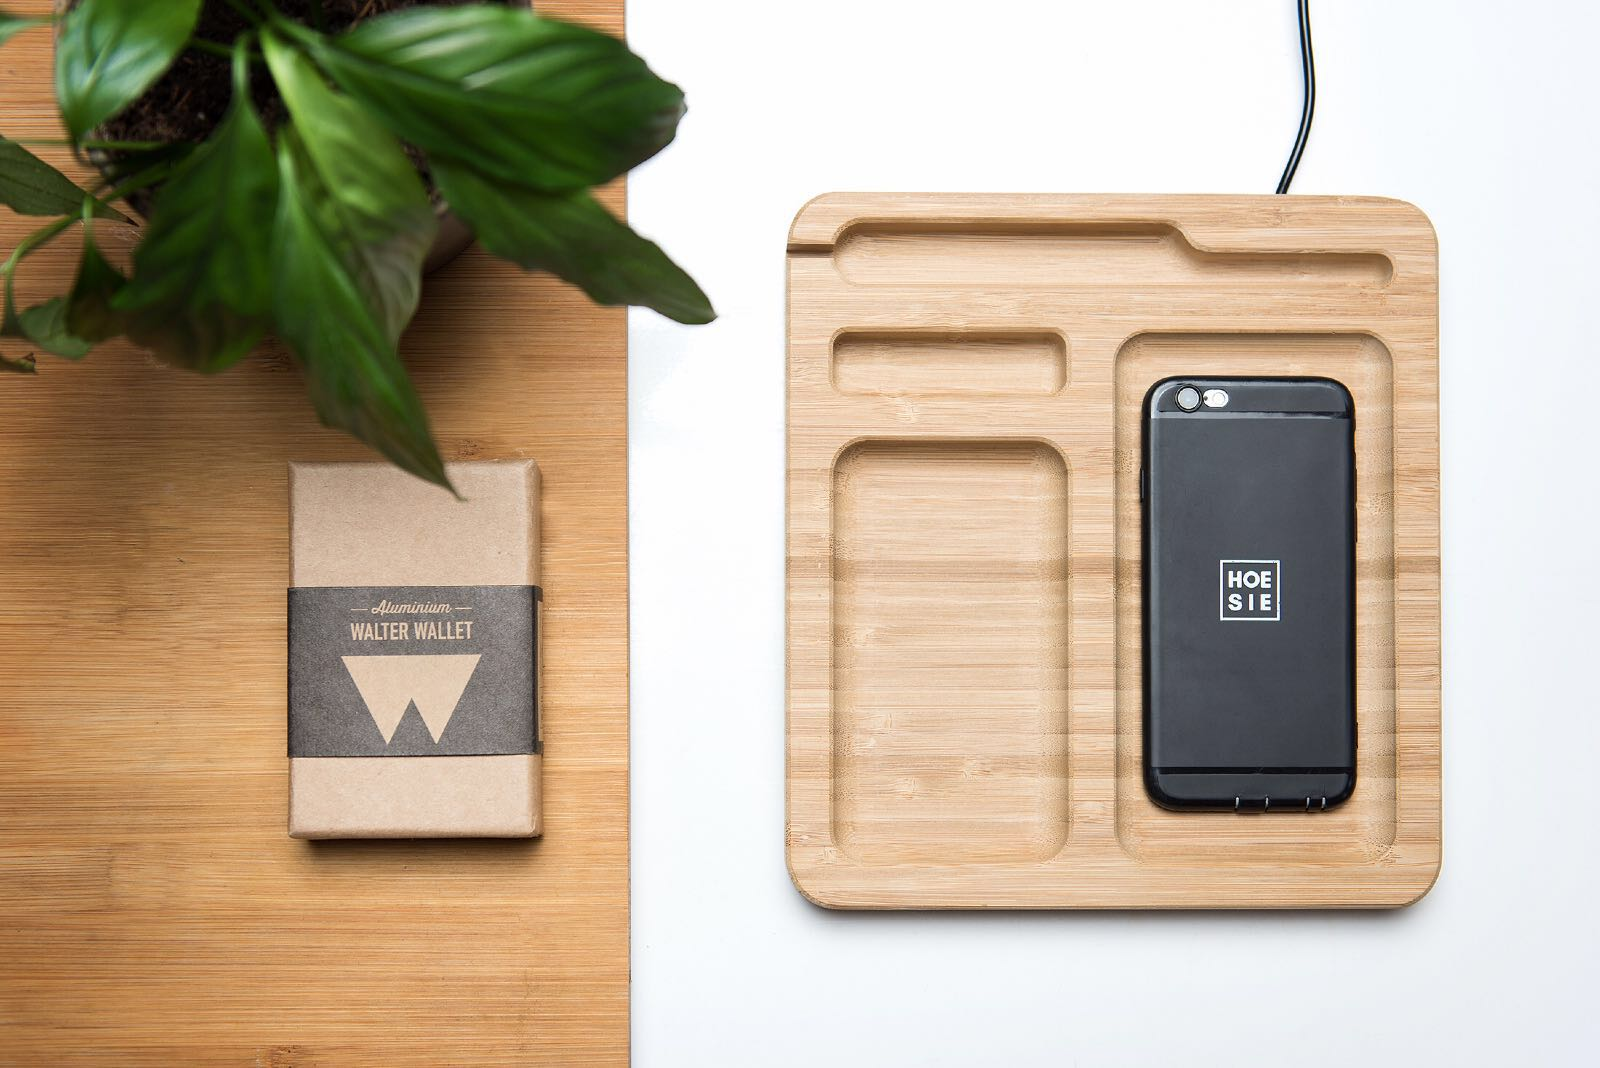 33ce55fab1f Walter Bamboo Dock met Wireless Charger - Walter Wallet - hoesie.nl